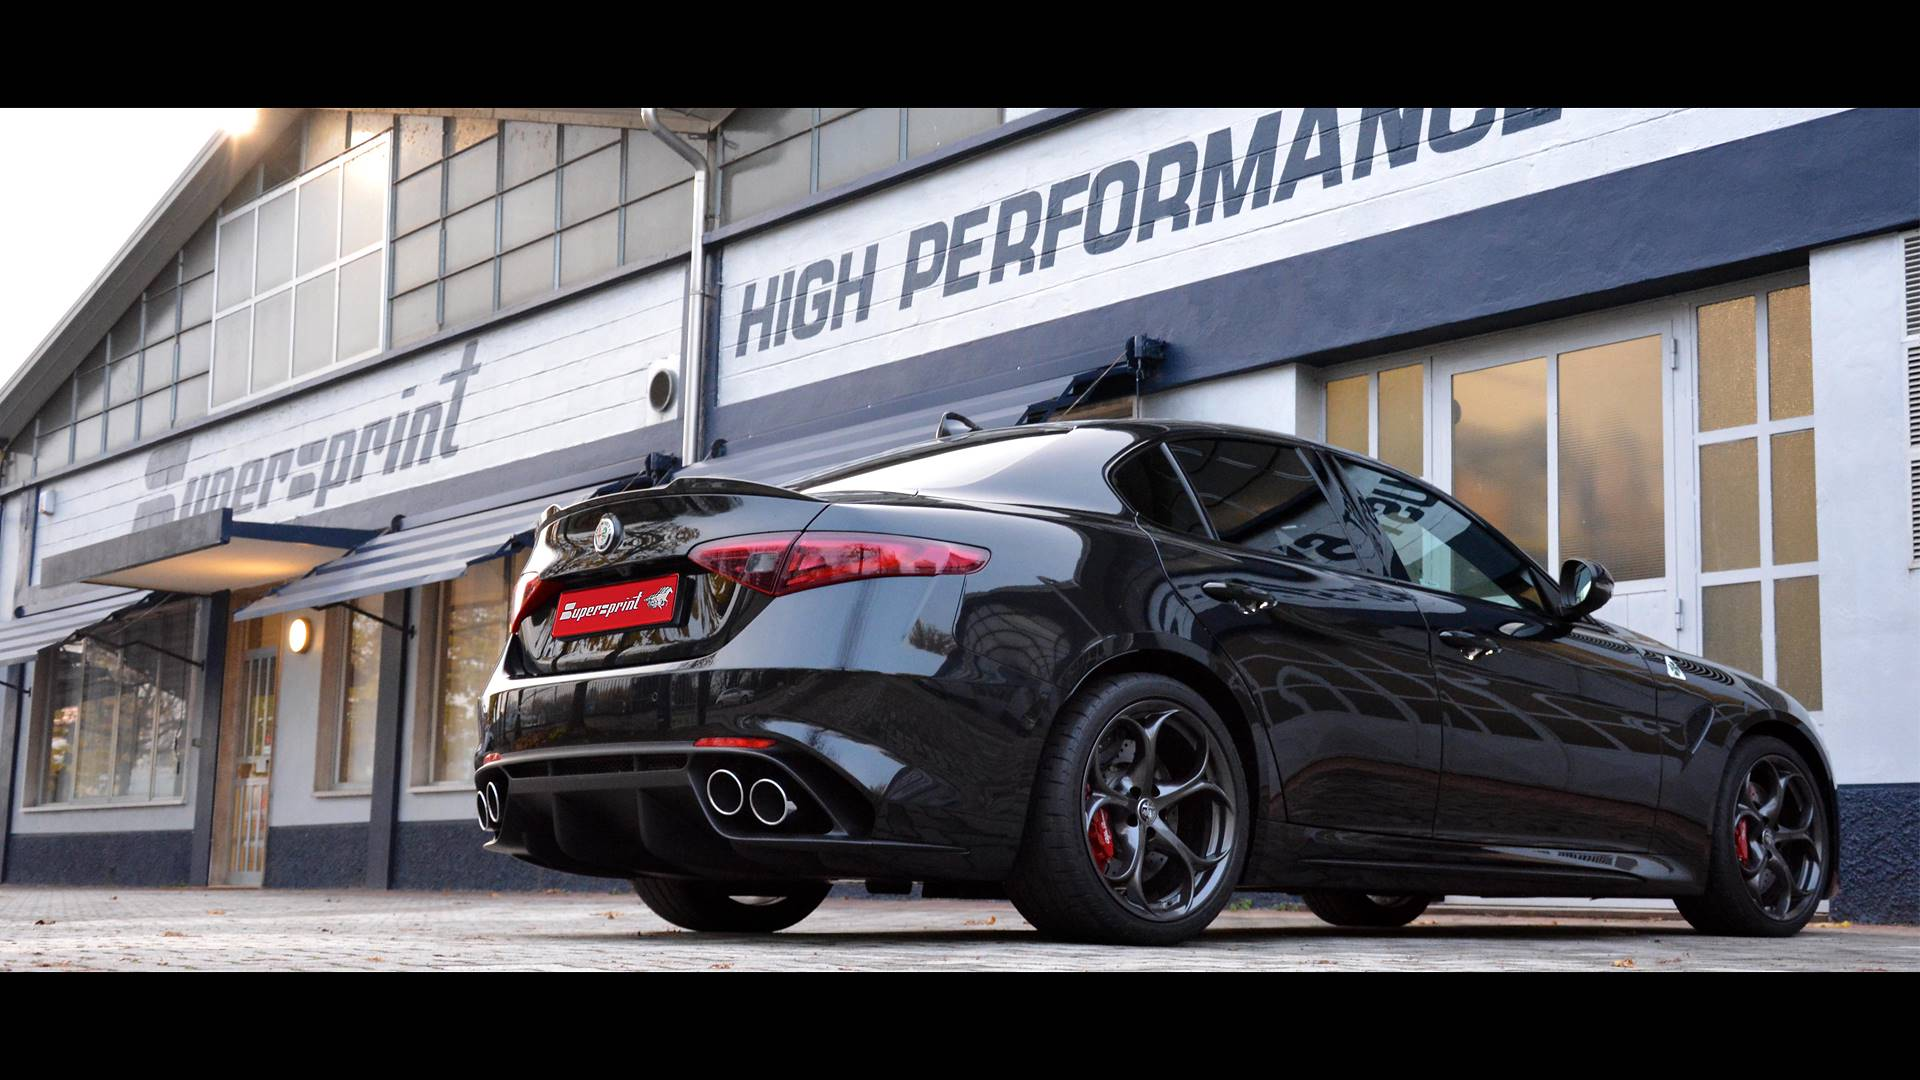 Alfa Romeo Giulia Quadrifoglio - Supersprint full exhaust system with valve